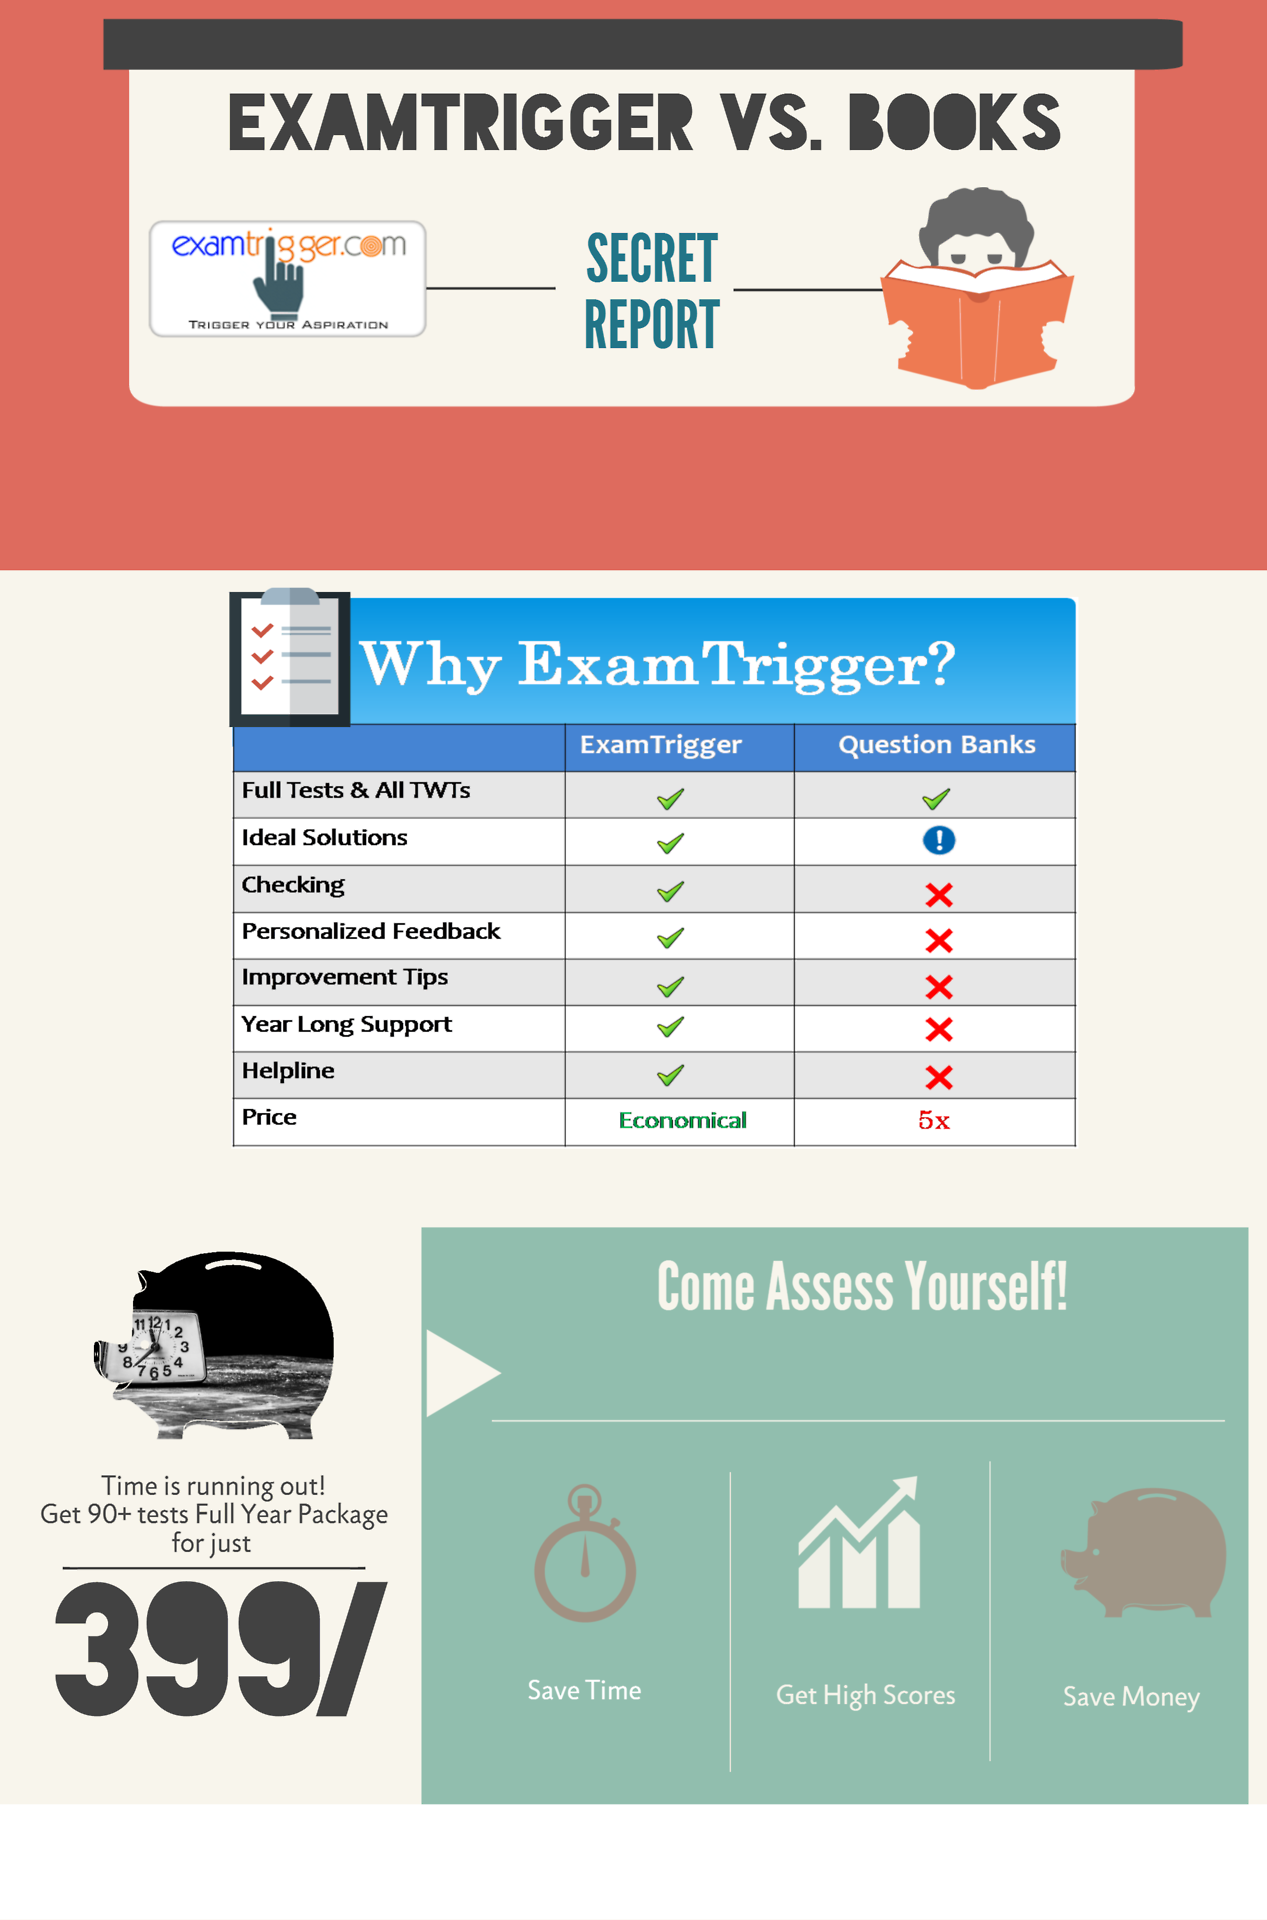 CBSE 12th full test, mock test, subjective test, topic-wise test ...